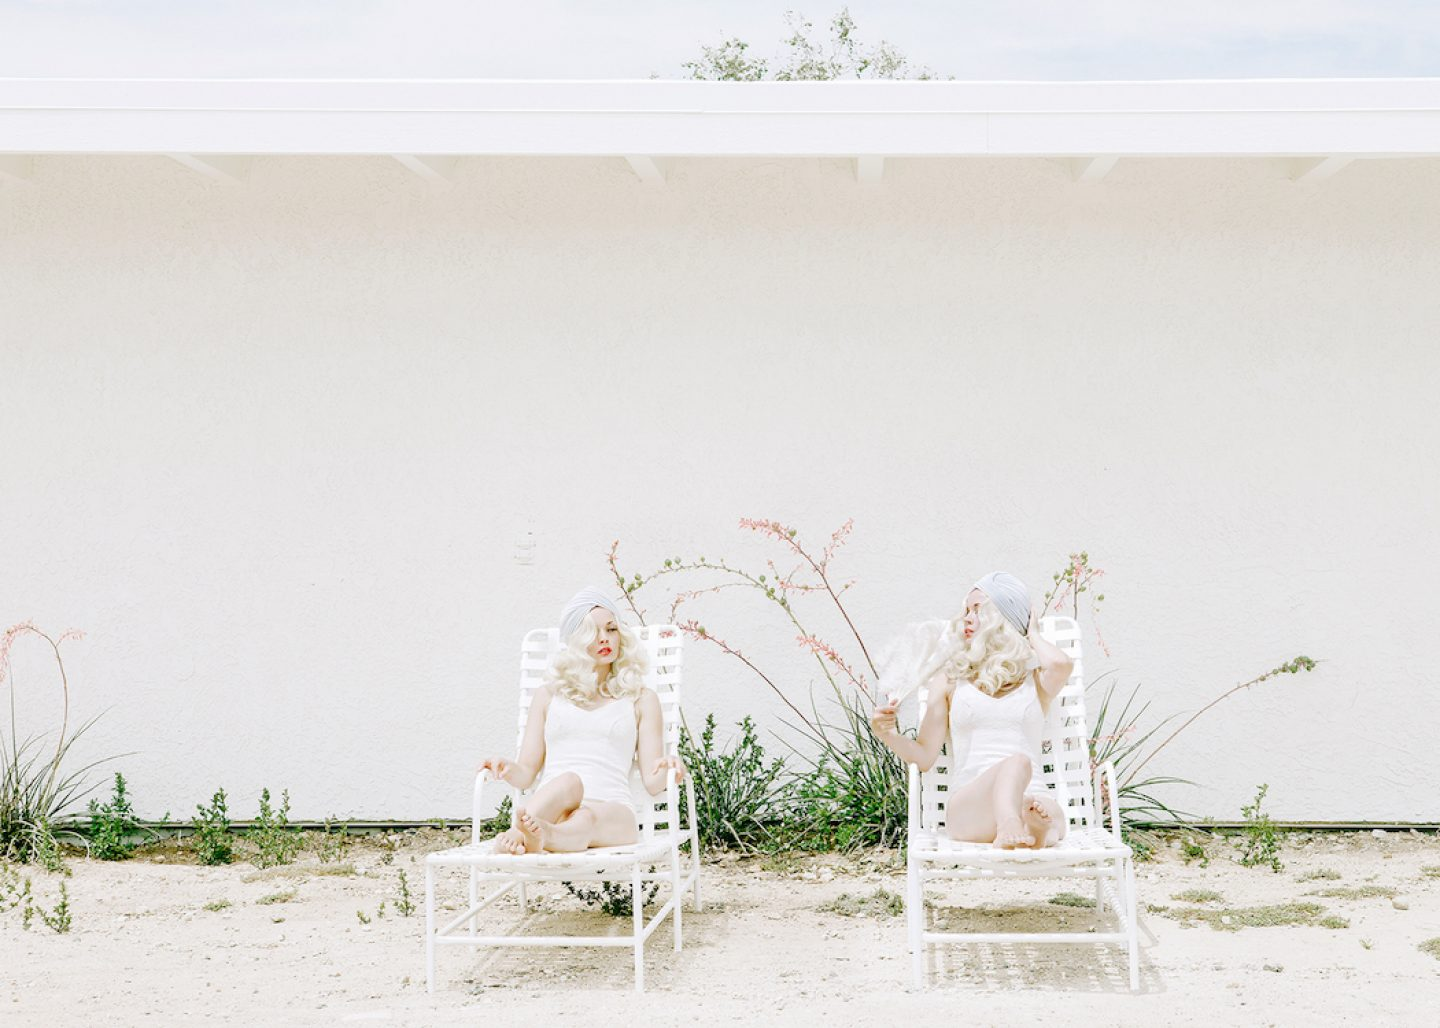 anjaniemi_photography-The Backyard © Anja Niemi